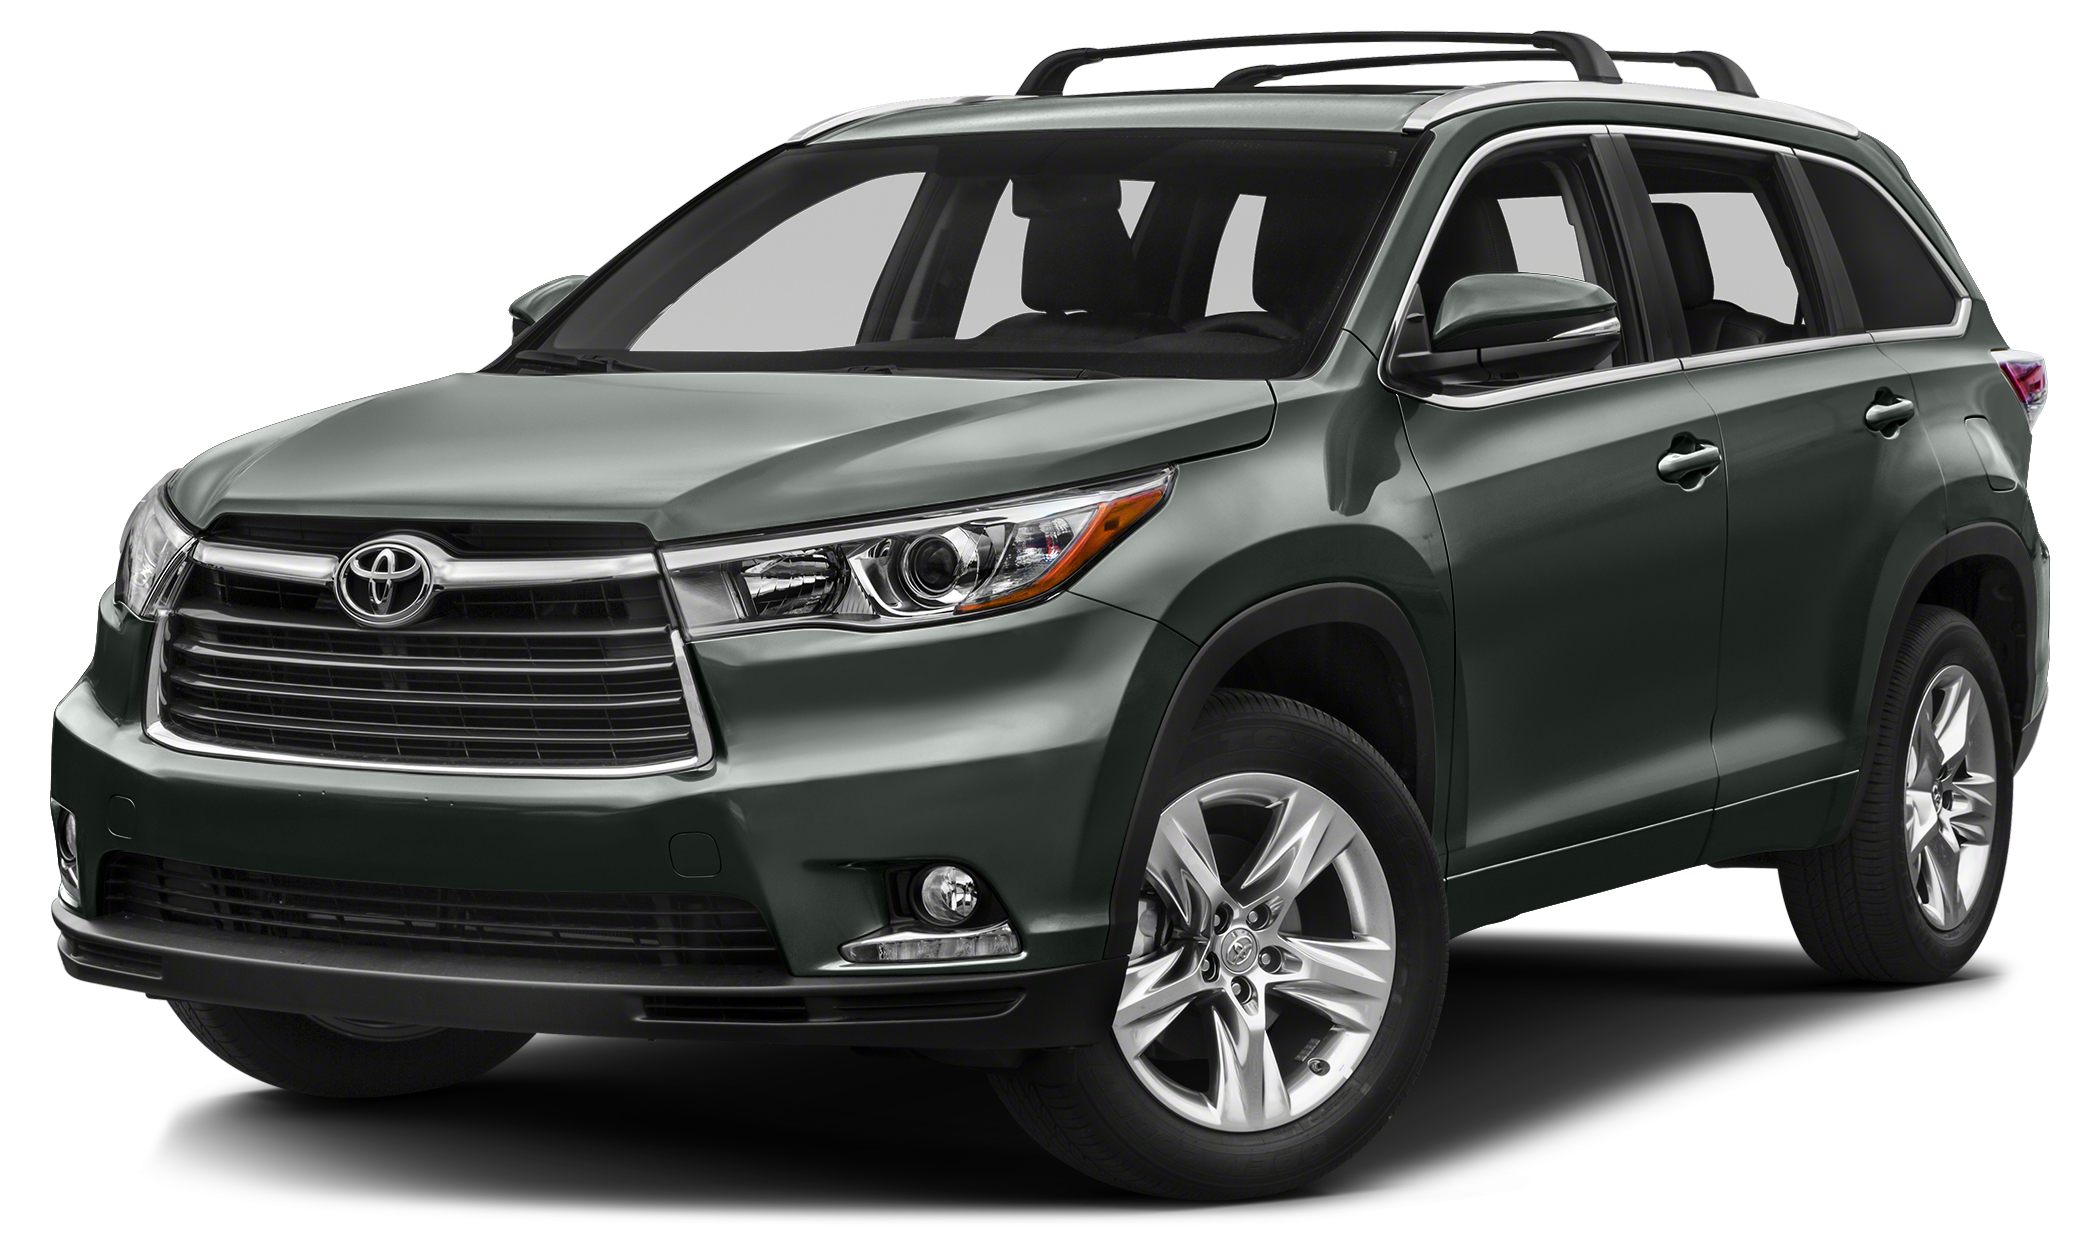 2015 Toyota Highlander Limited Platinum Make the most of your weeks and your weekends in the 2015